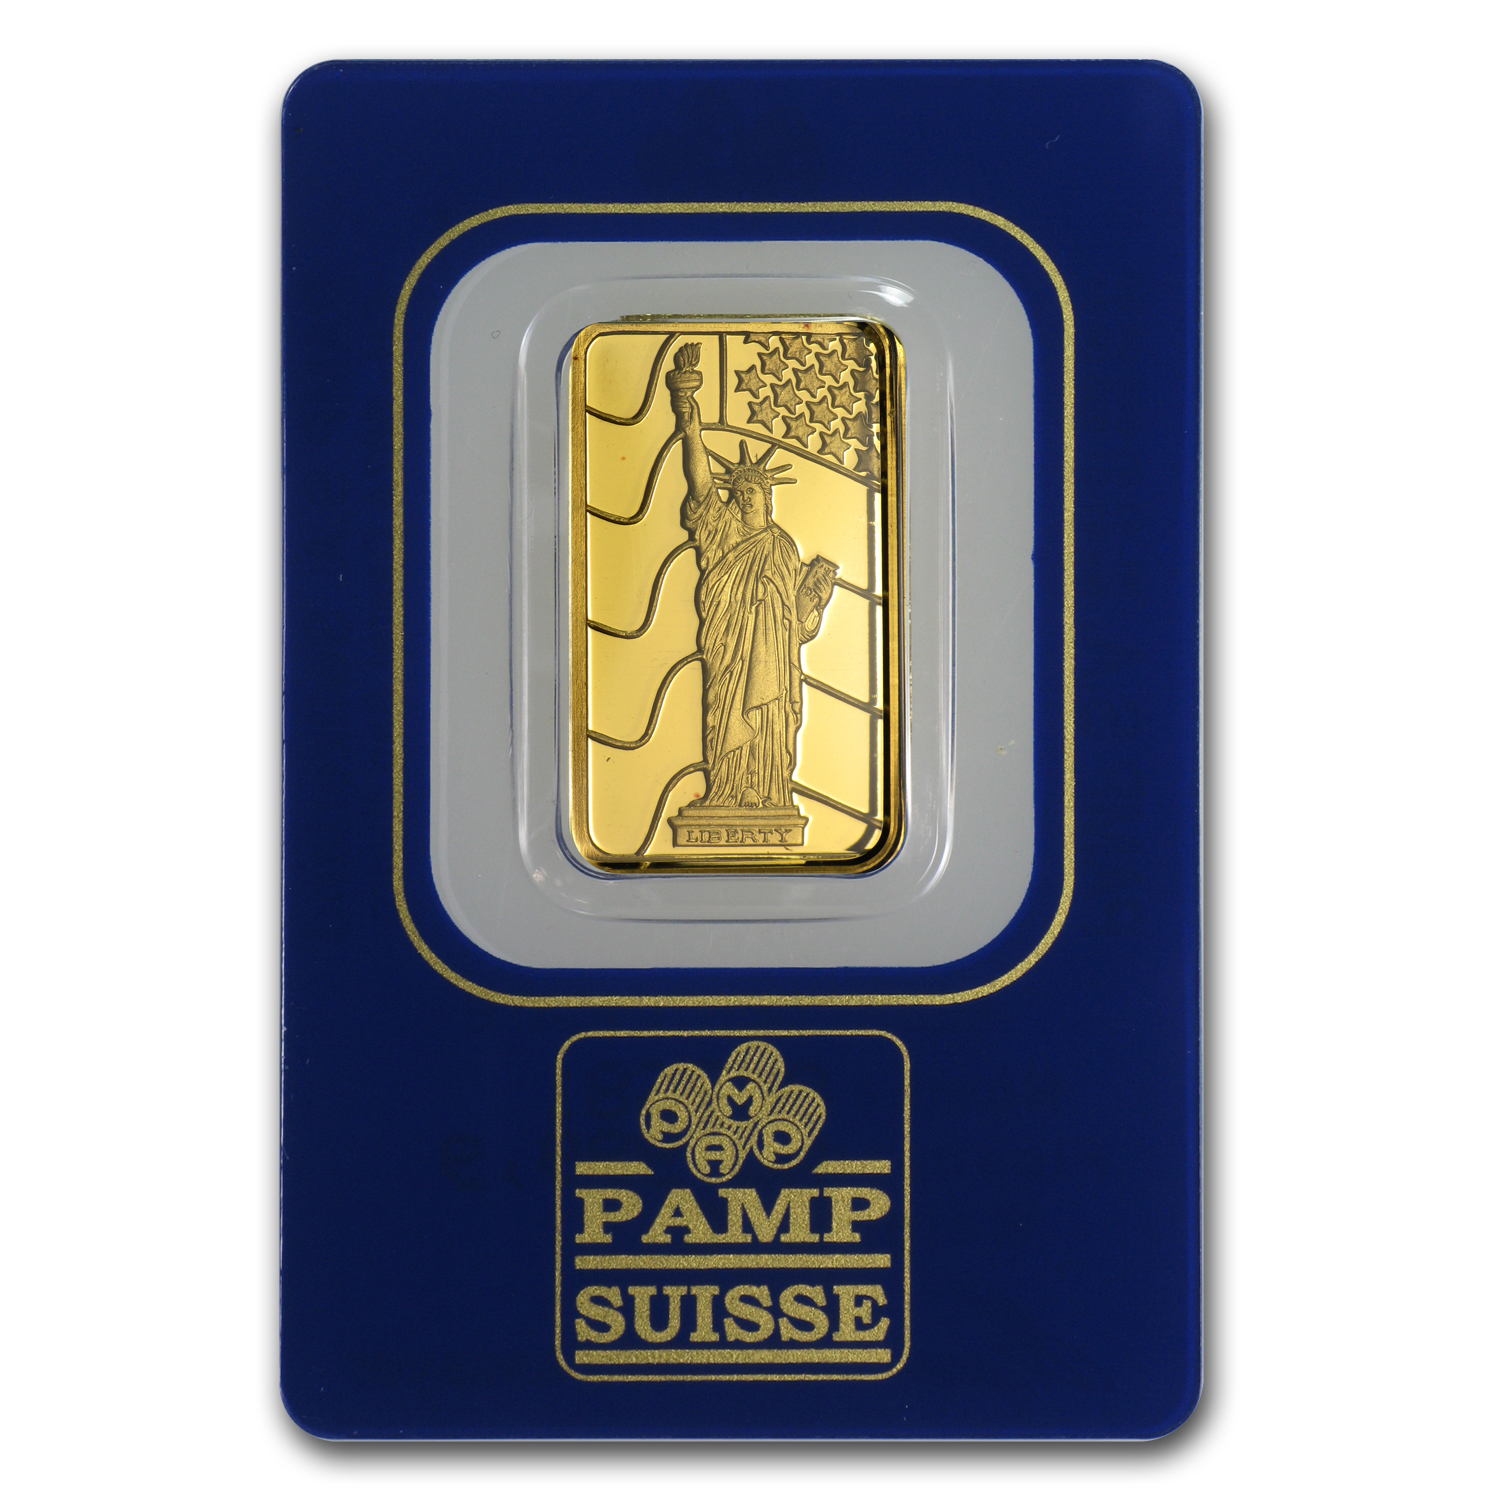 5 gram Gold Bar - Pamp Suisse Statue of Liberty